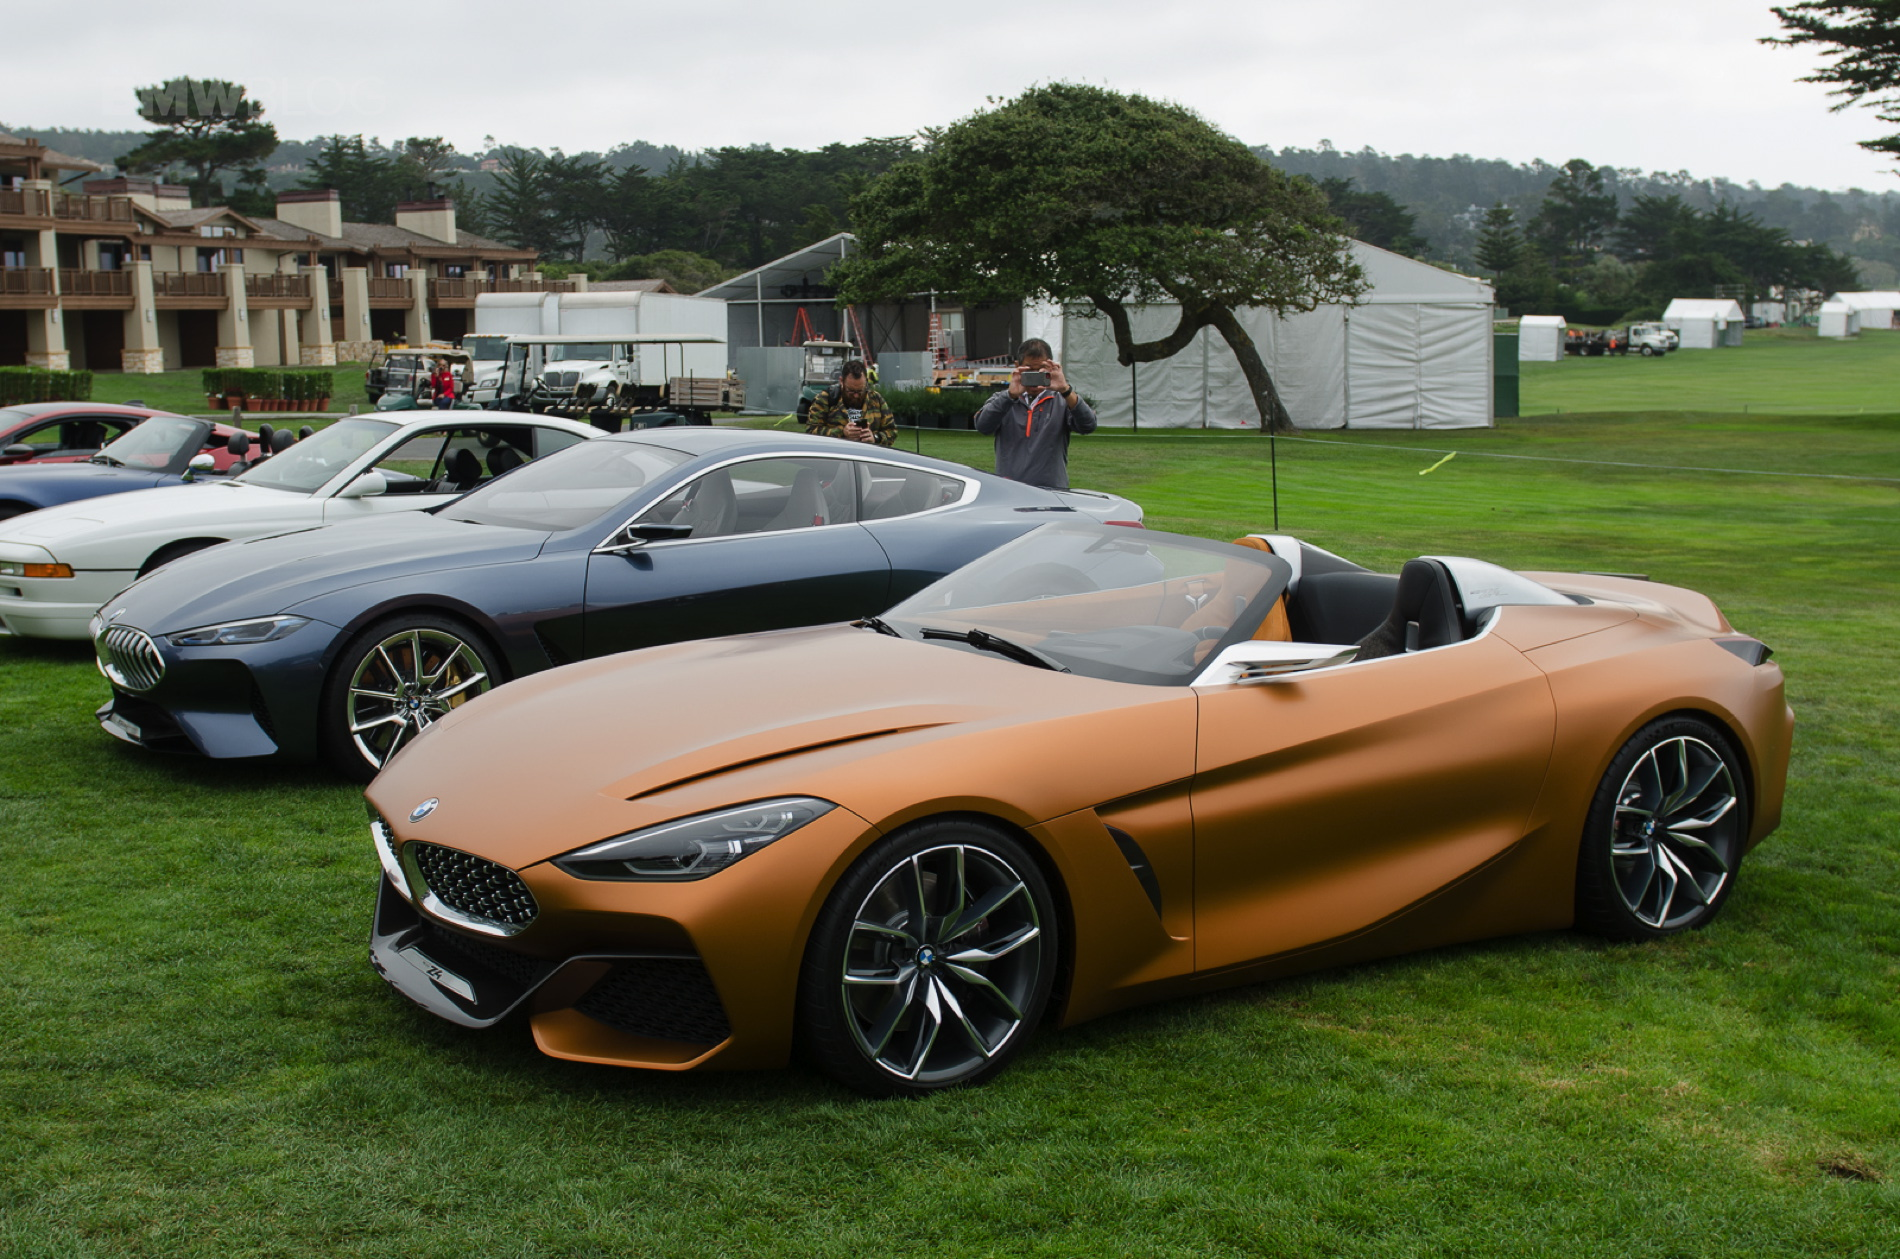 Video Bmw Concept Z4 And 8 Series Coupe At Pebble Beach